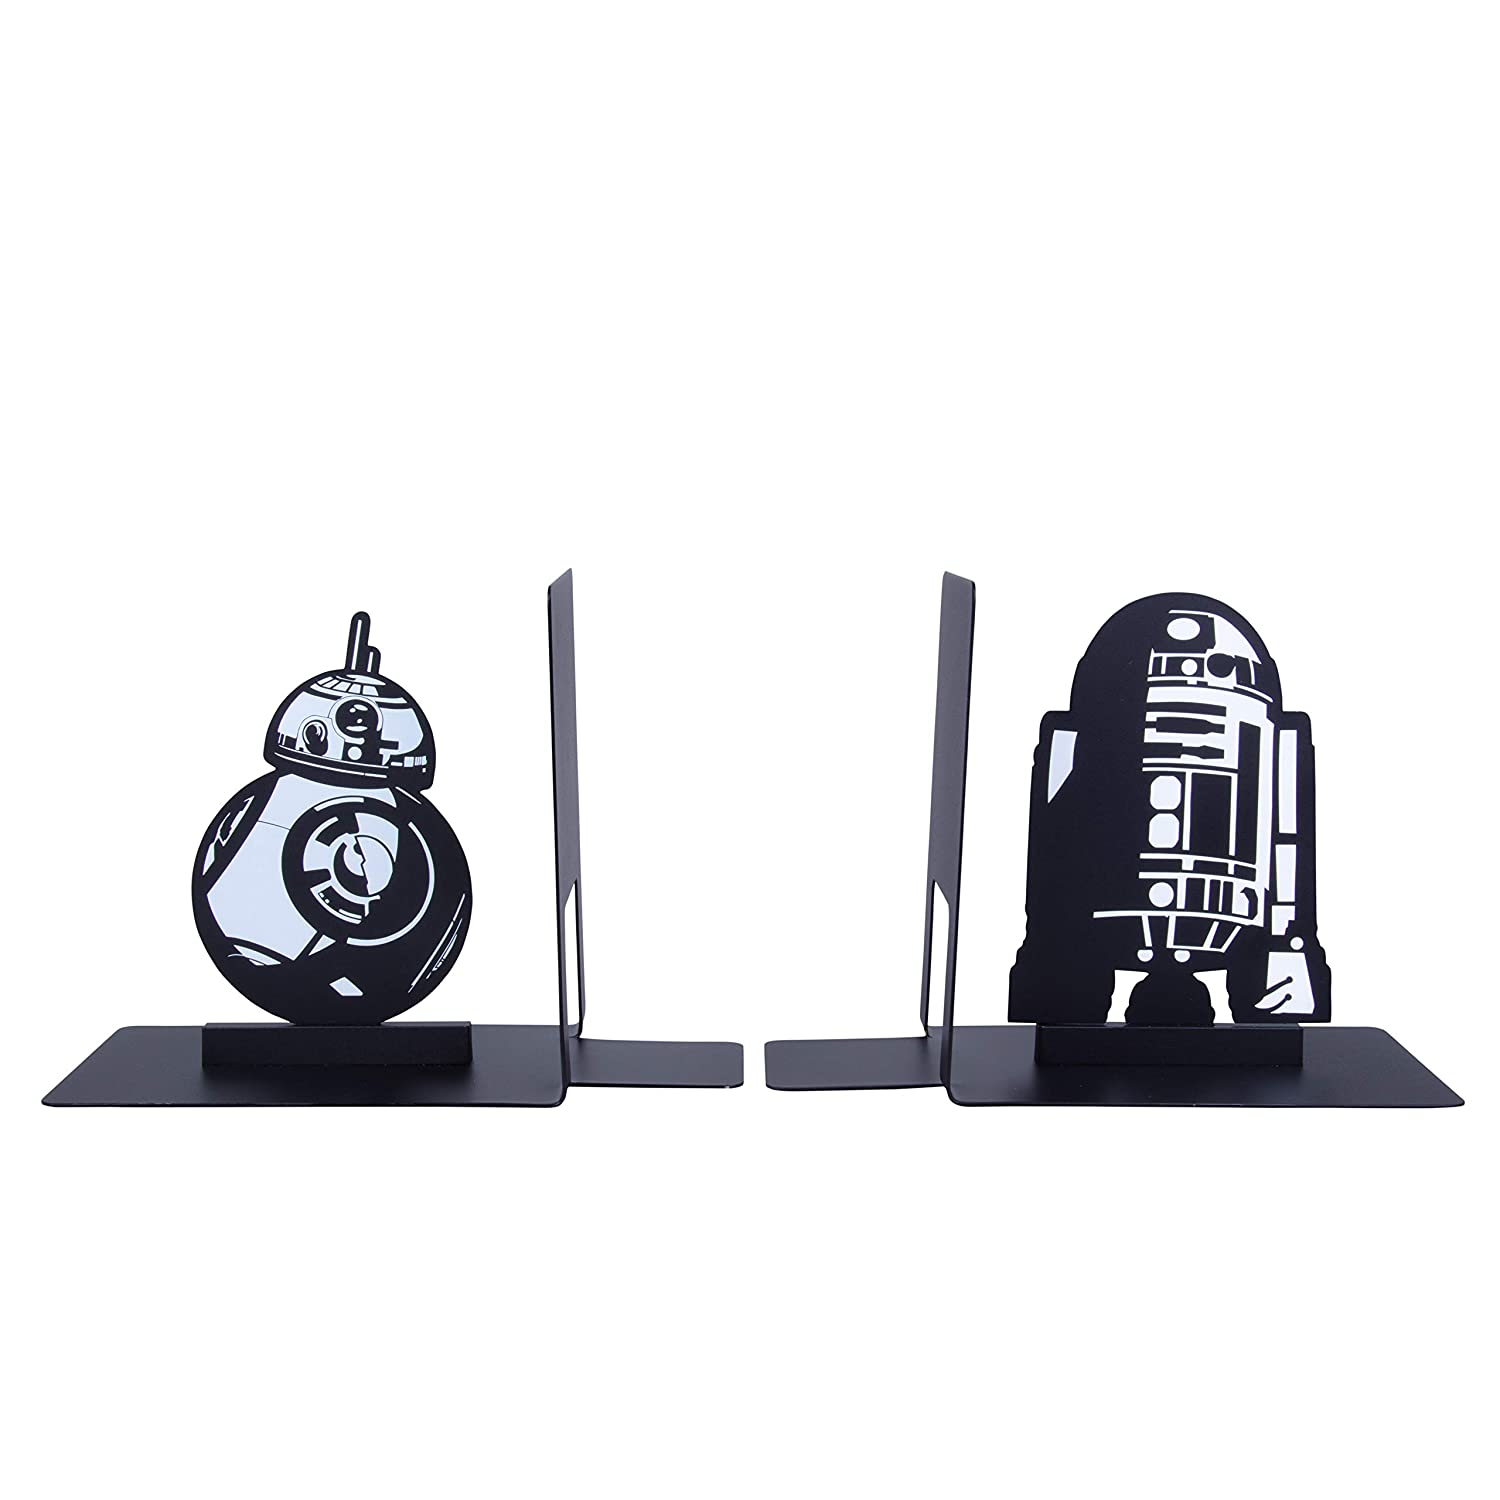 Decorative Metal R2-D2 and BB-8 Designs Seven20 Star Wars Droid Bookends